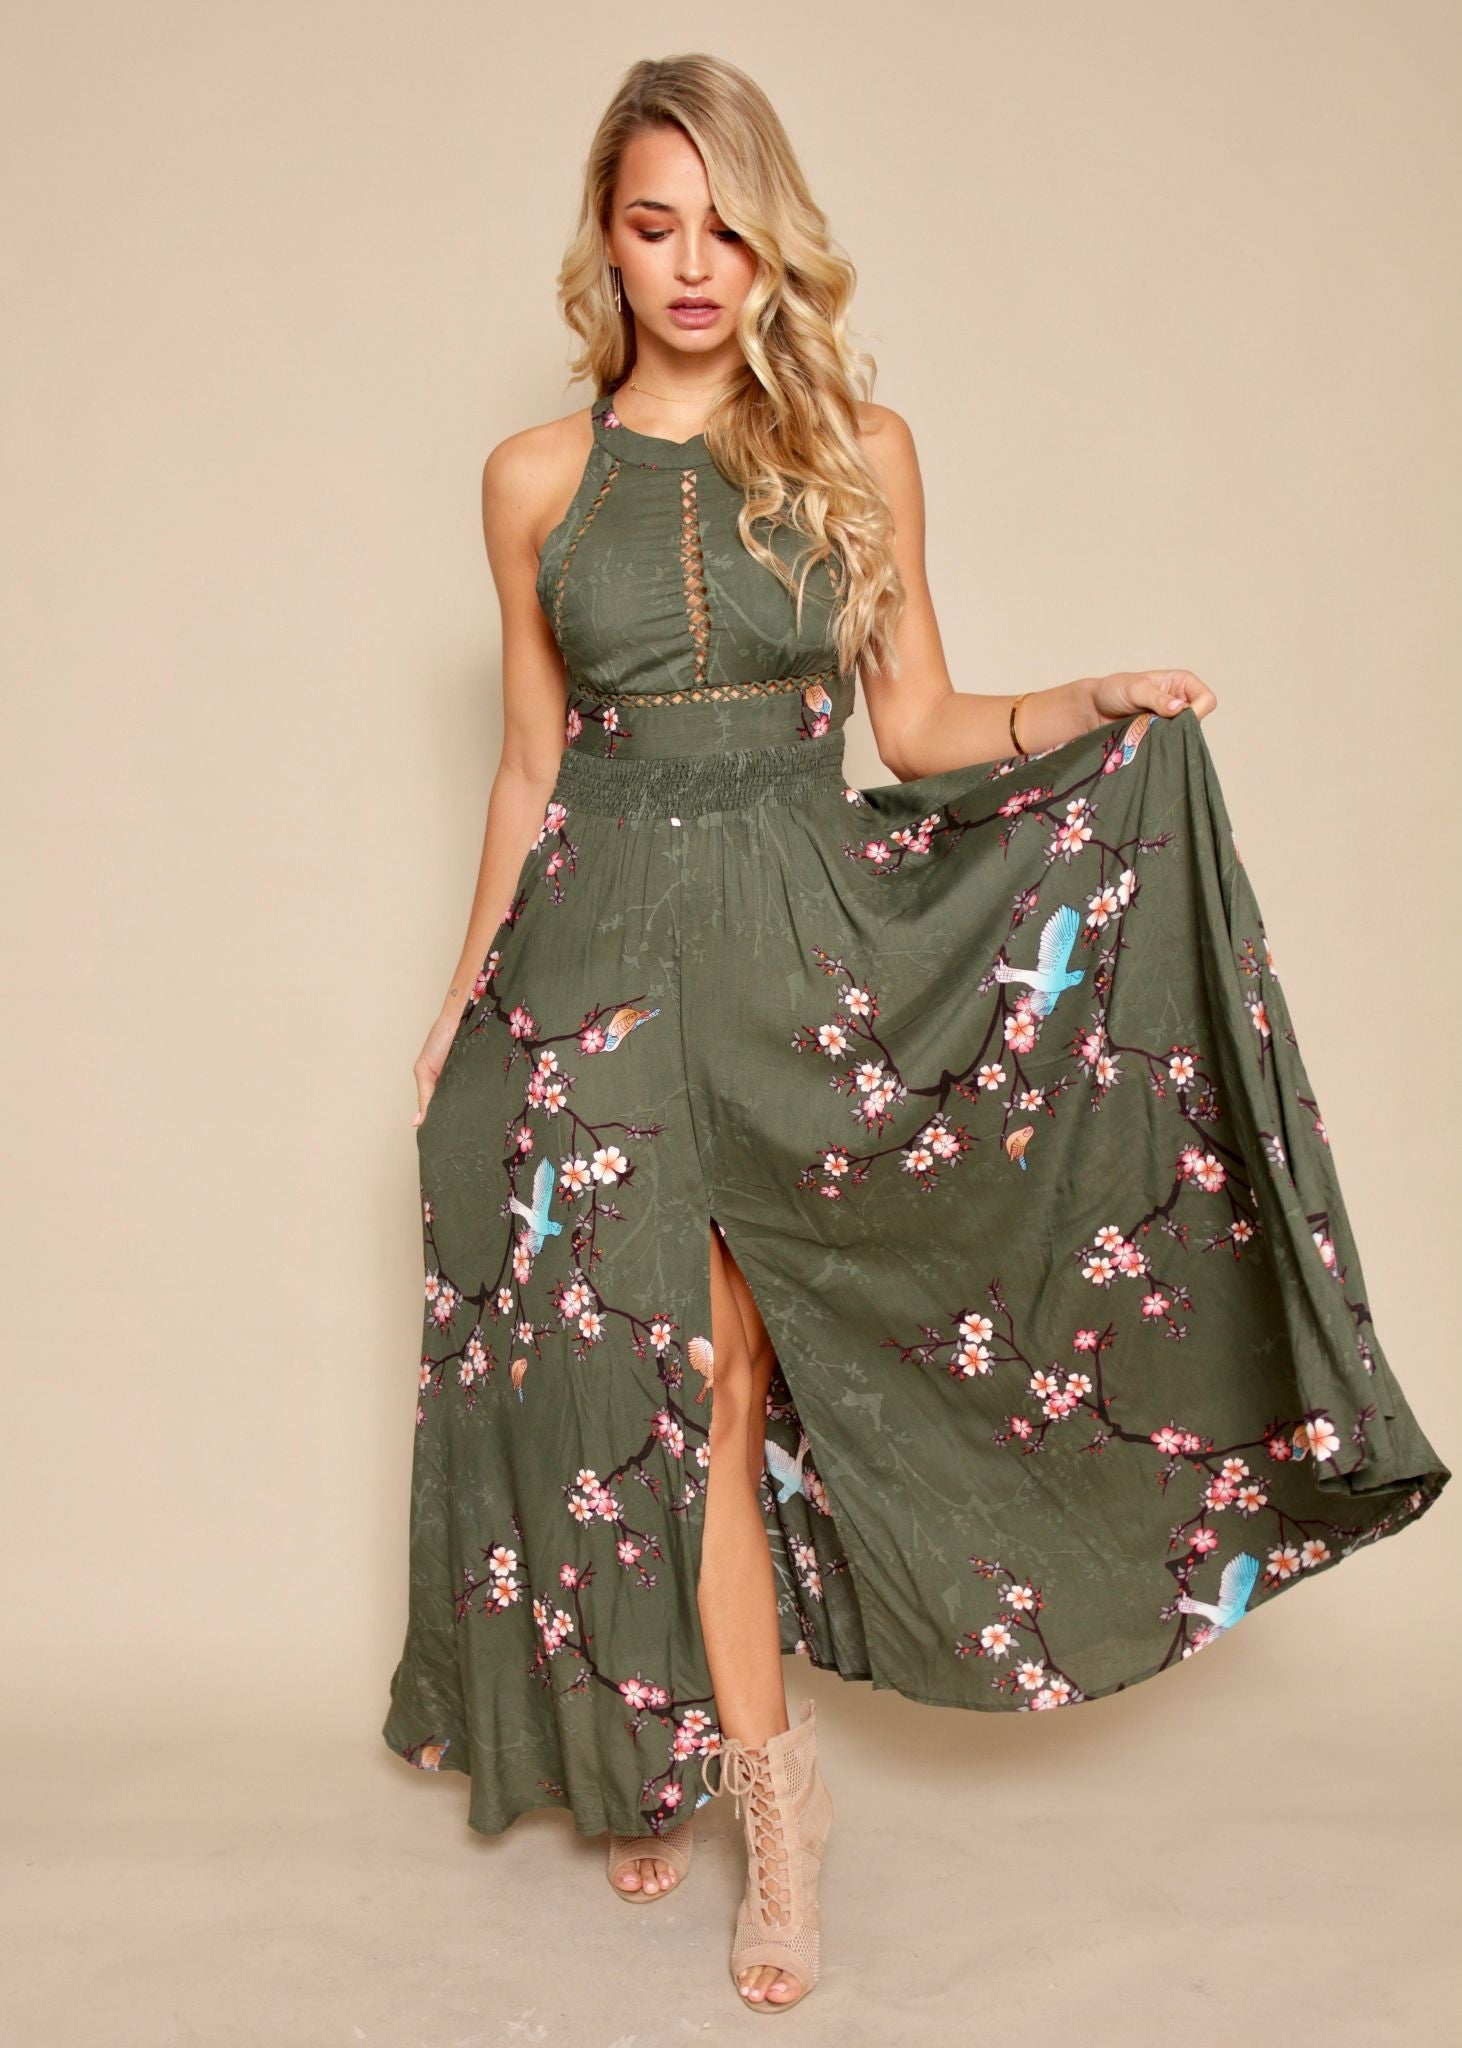 Break Of Dawn Maxi - Khaki Blossom